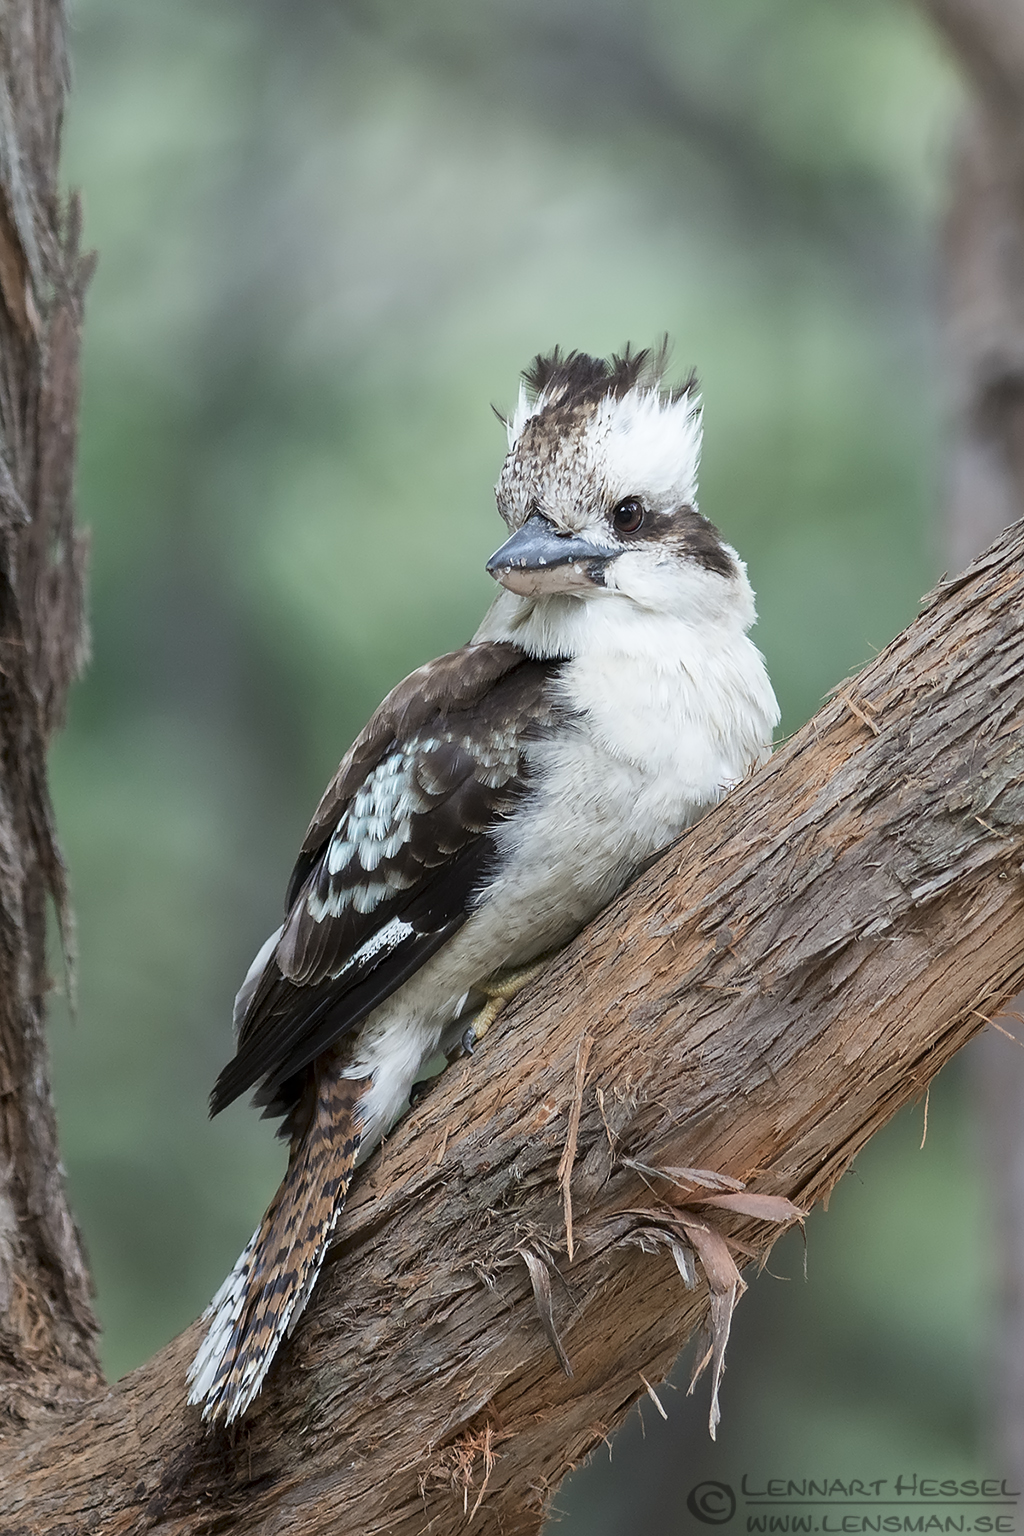 Laughing Kookaburra wild bird national geographic